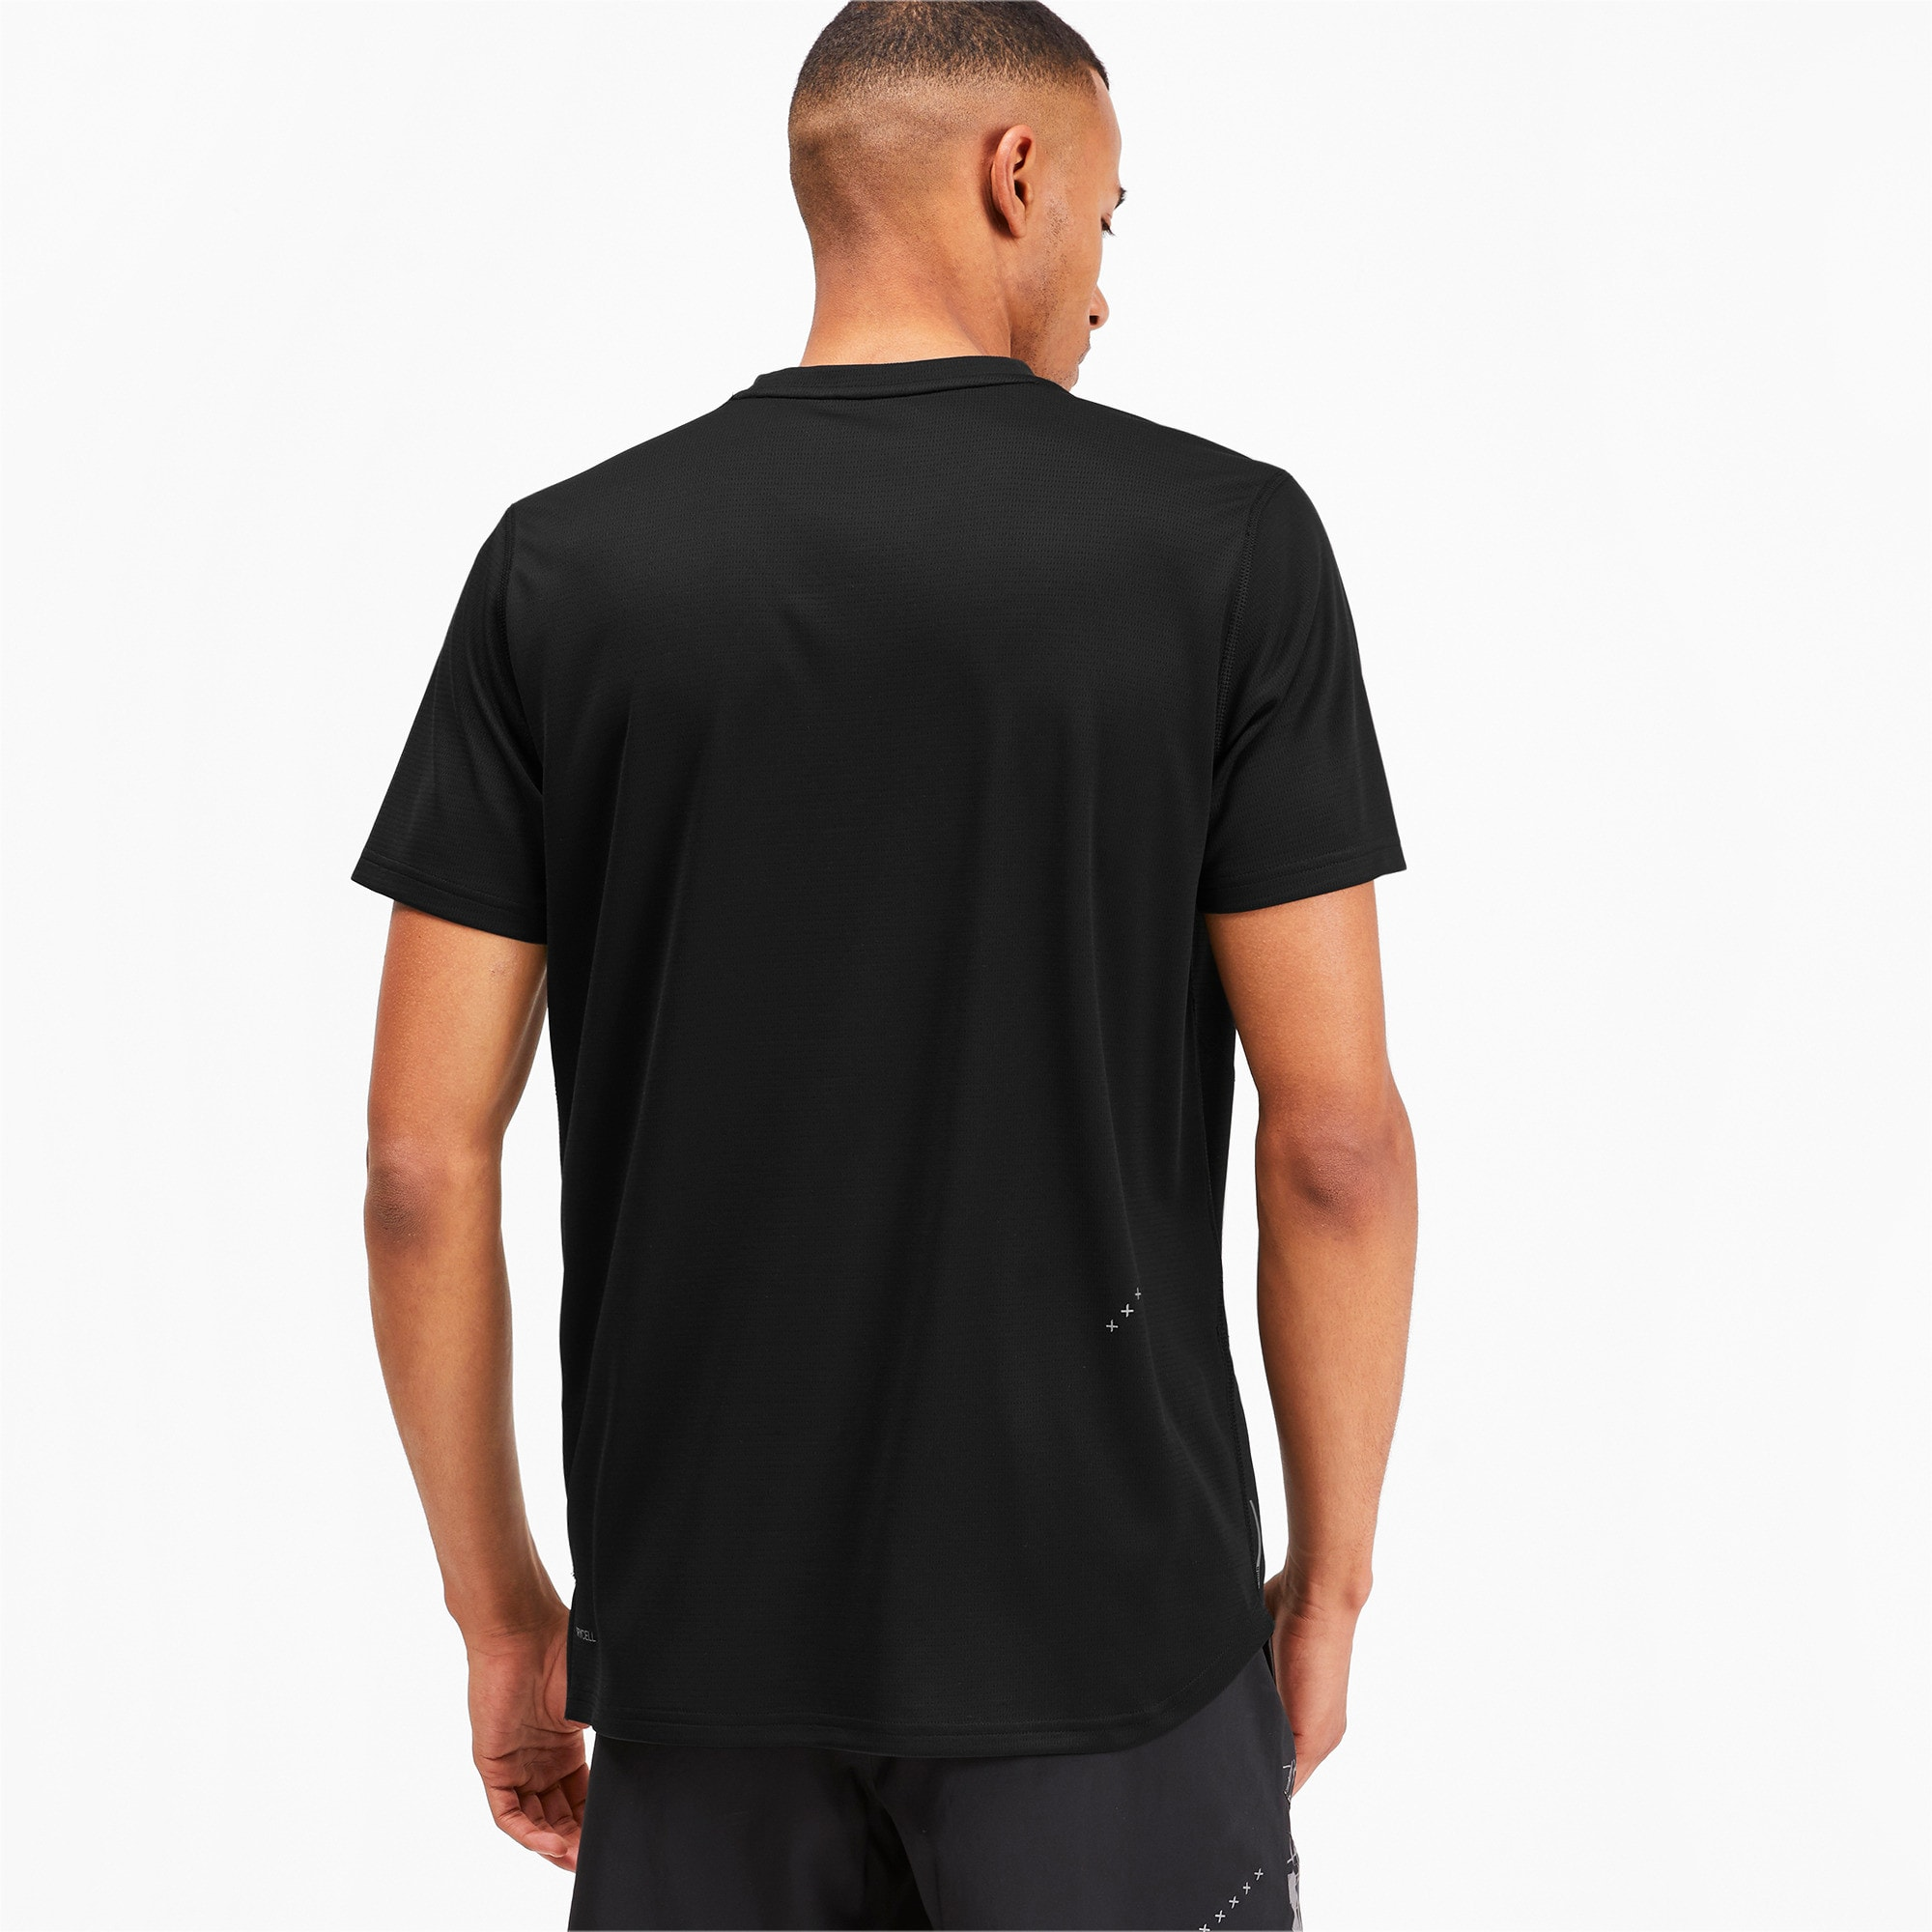 Thumbnail 2 of IGNITE Men's Running T-Shirt, Puma Black, medium